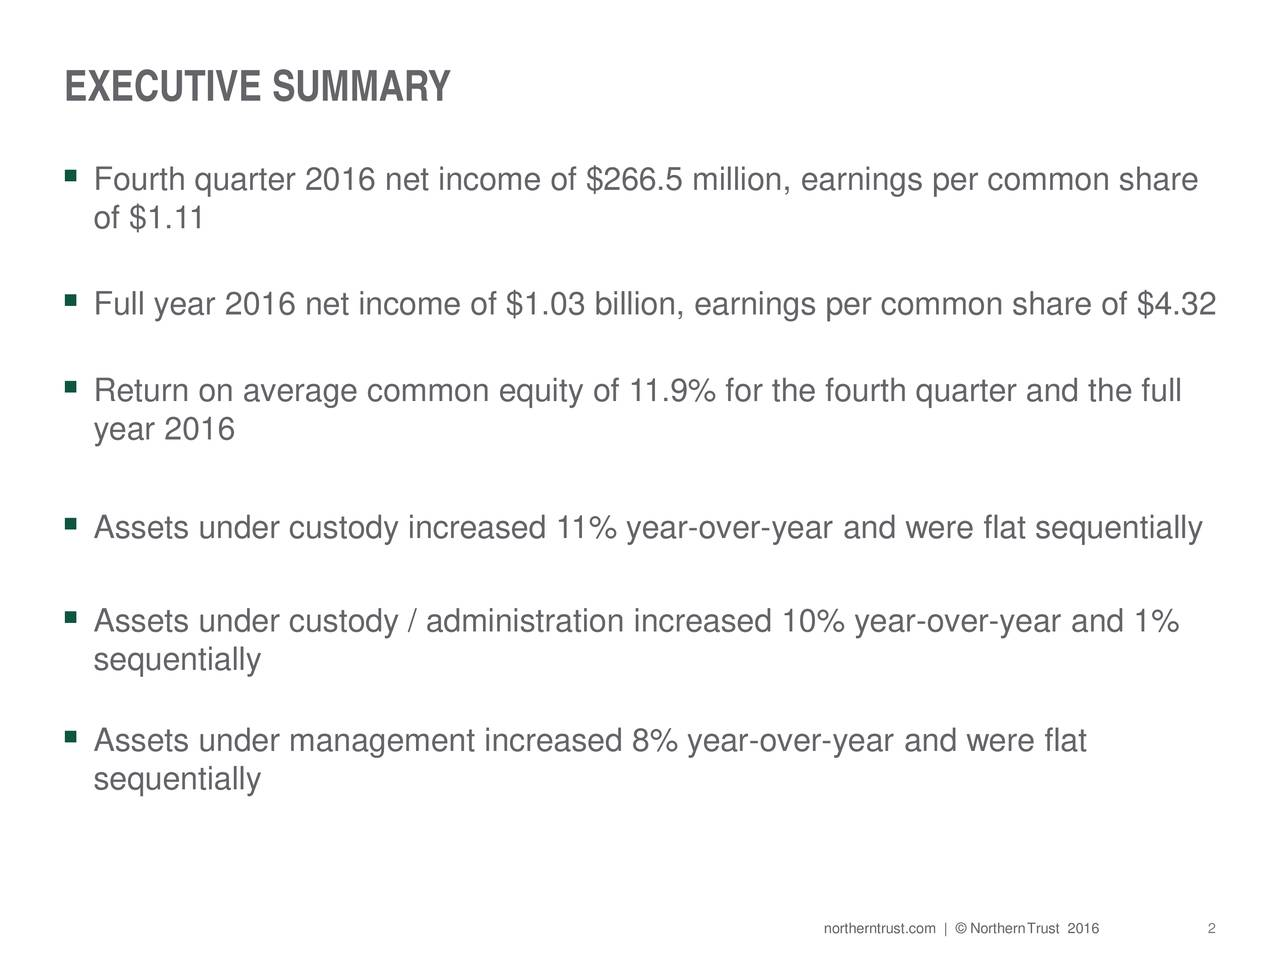 Fourth quarter 2016 net income of $266.5 million, earnings per common share of $1.11 Full year 2016 net income of $1.03 billion, earnings per common share of $4.32 Return on average common equity of 11.9% for the fourth quarter and the full year 2016 Assets under custody increased 11% year-over-year and were flat sequentially Assets under custody / administration increased 10% year-over-year and 1% sequentially Assets under management increased 8% year-over-year and were flat sequentially northerntrust.com    Nort2ernTrust 2016